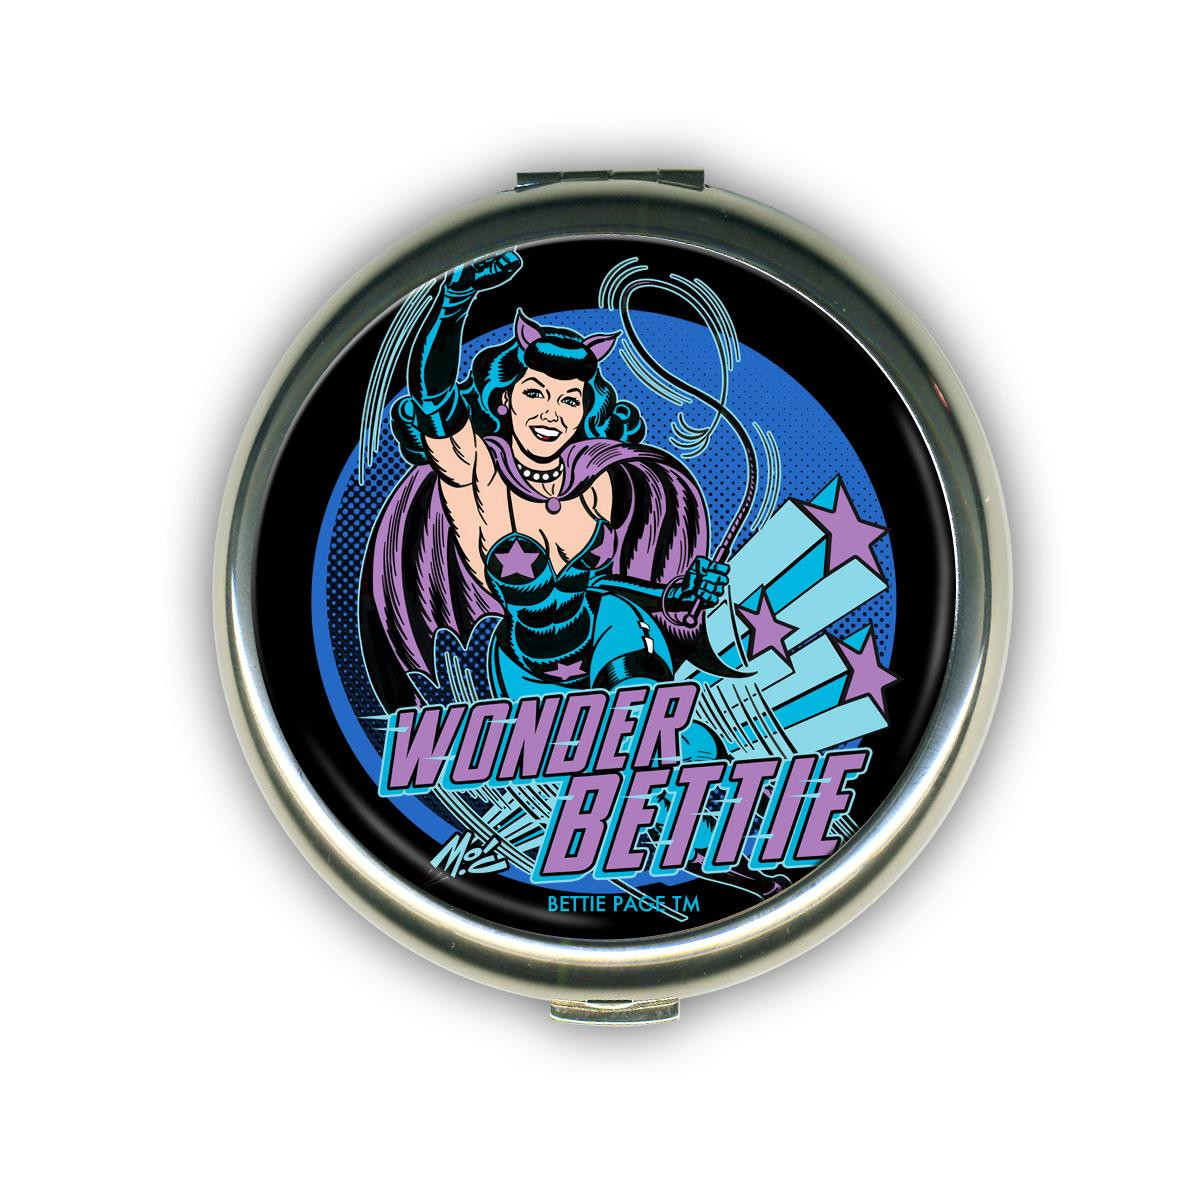 Bettie Page Wonder Bettie Compact* -